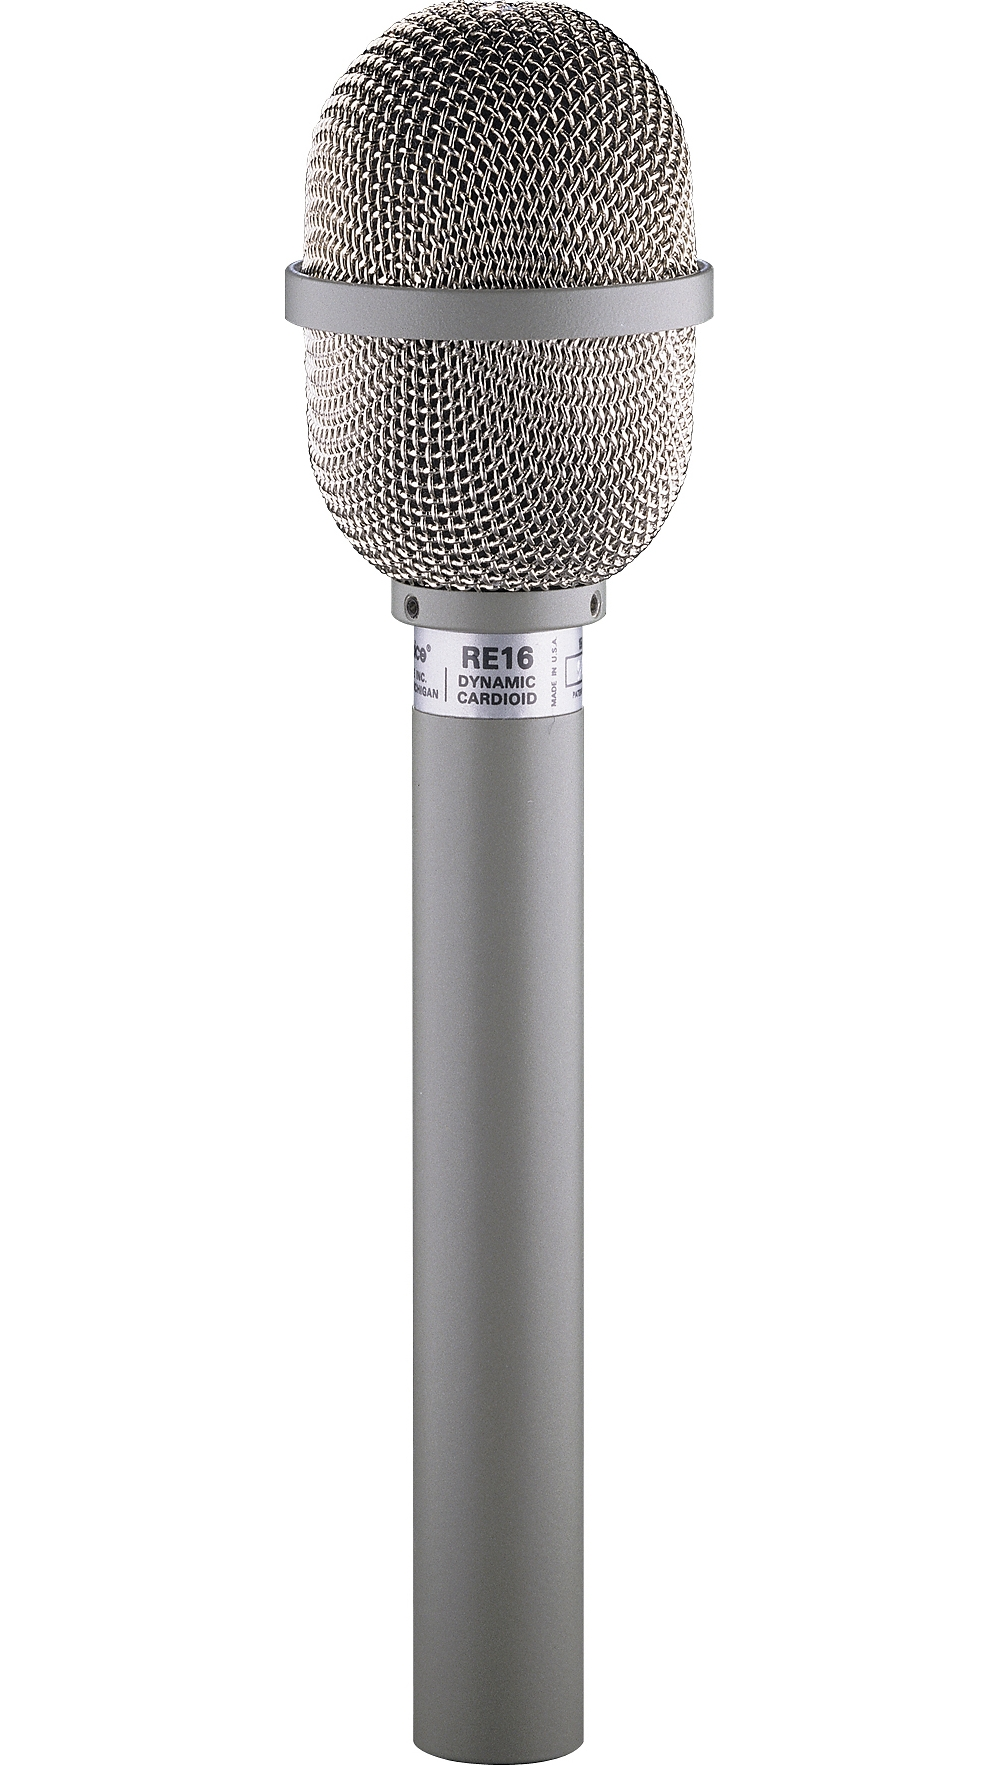 Electro-Voice RE16 Supercardioid Handheld Dynamic Microphone by Electro-Voice